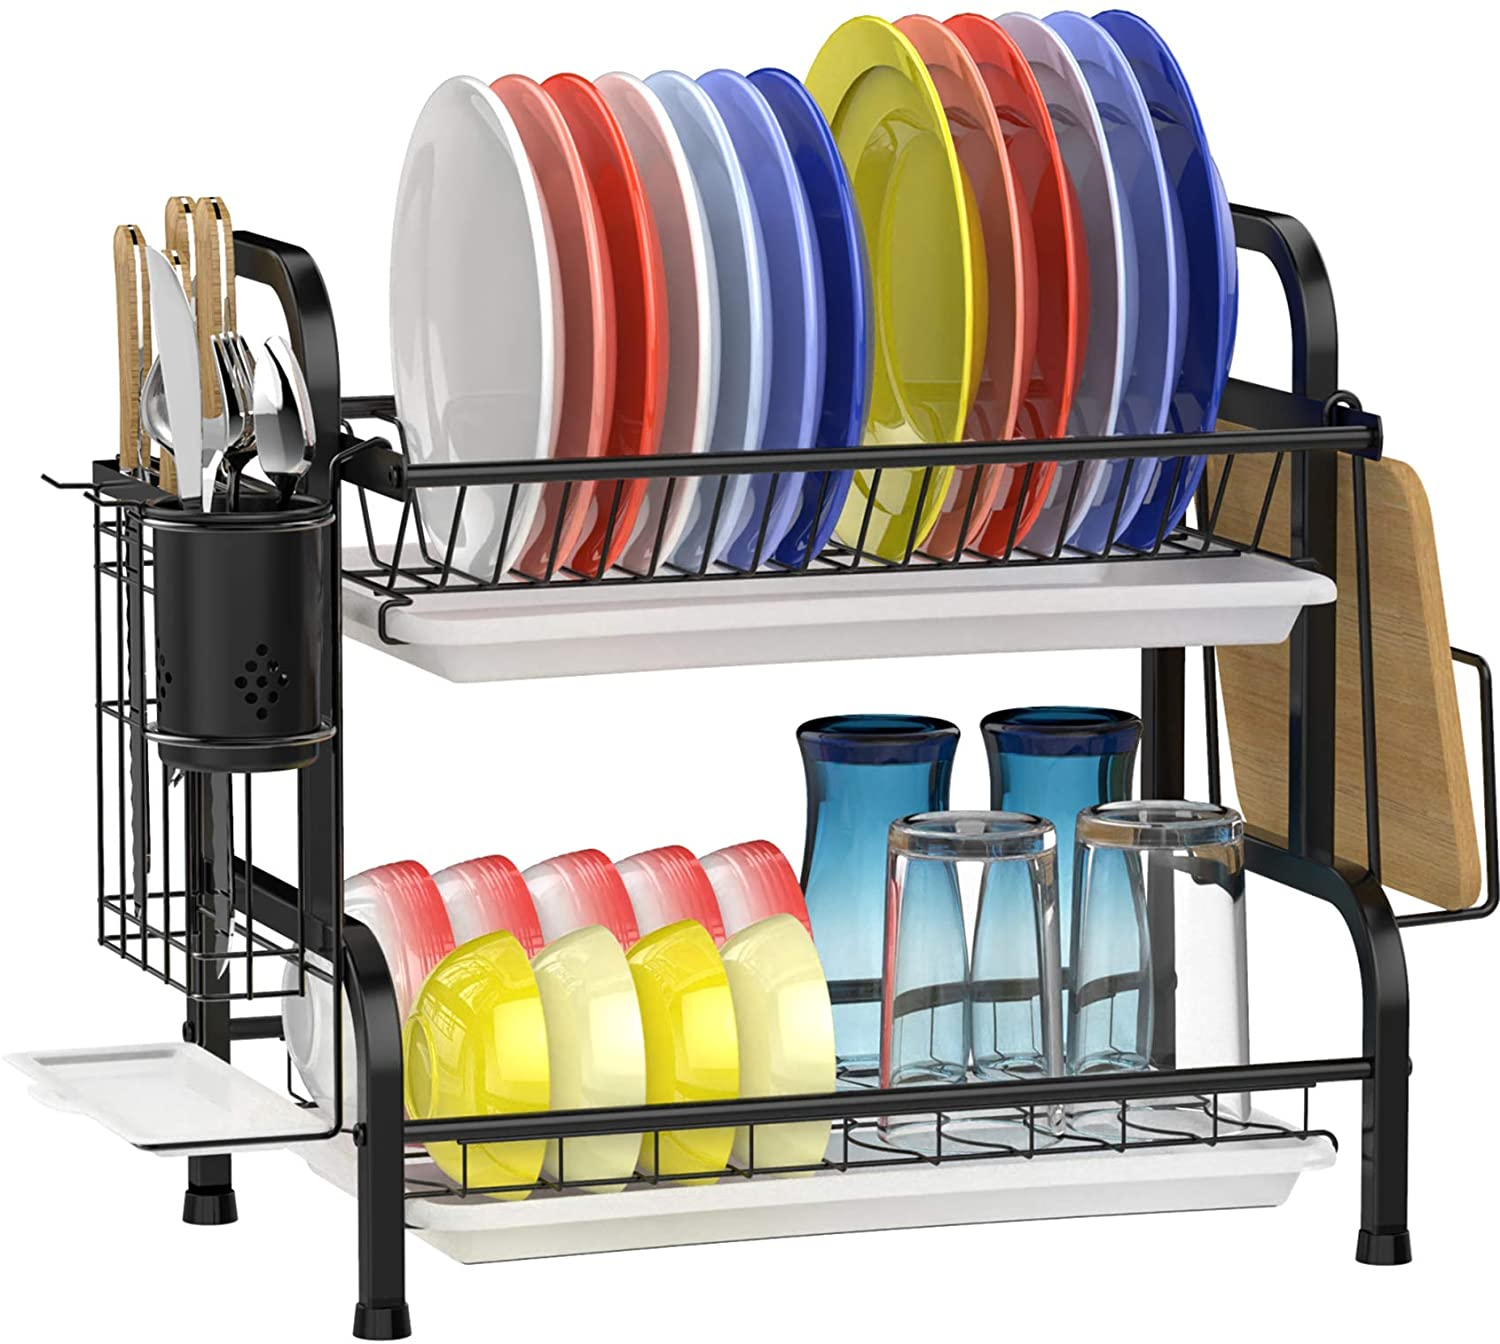 GSlife Stainless Steel 2 Tier Dish Rack